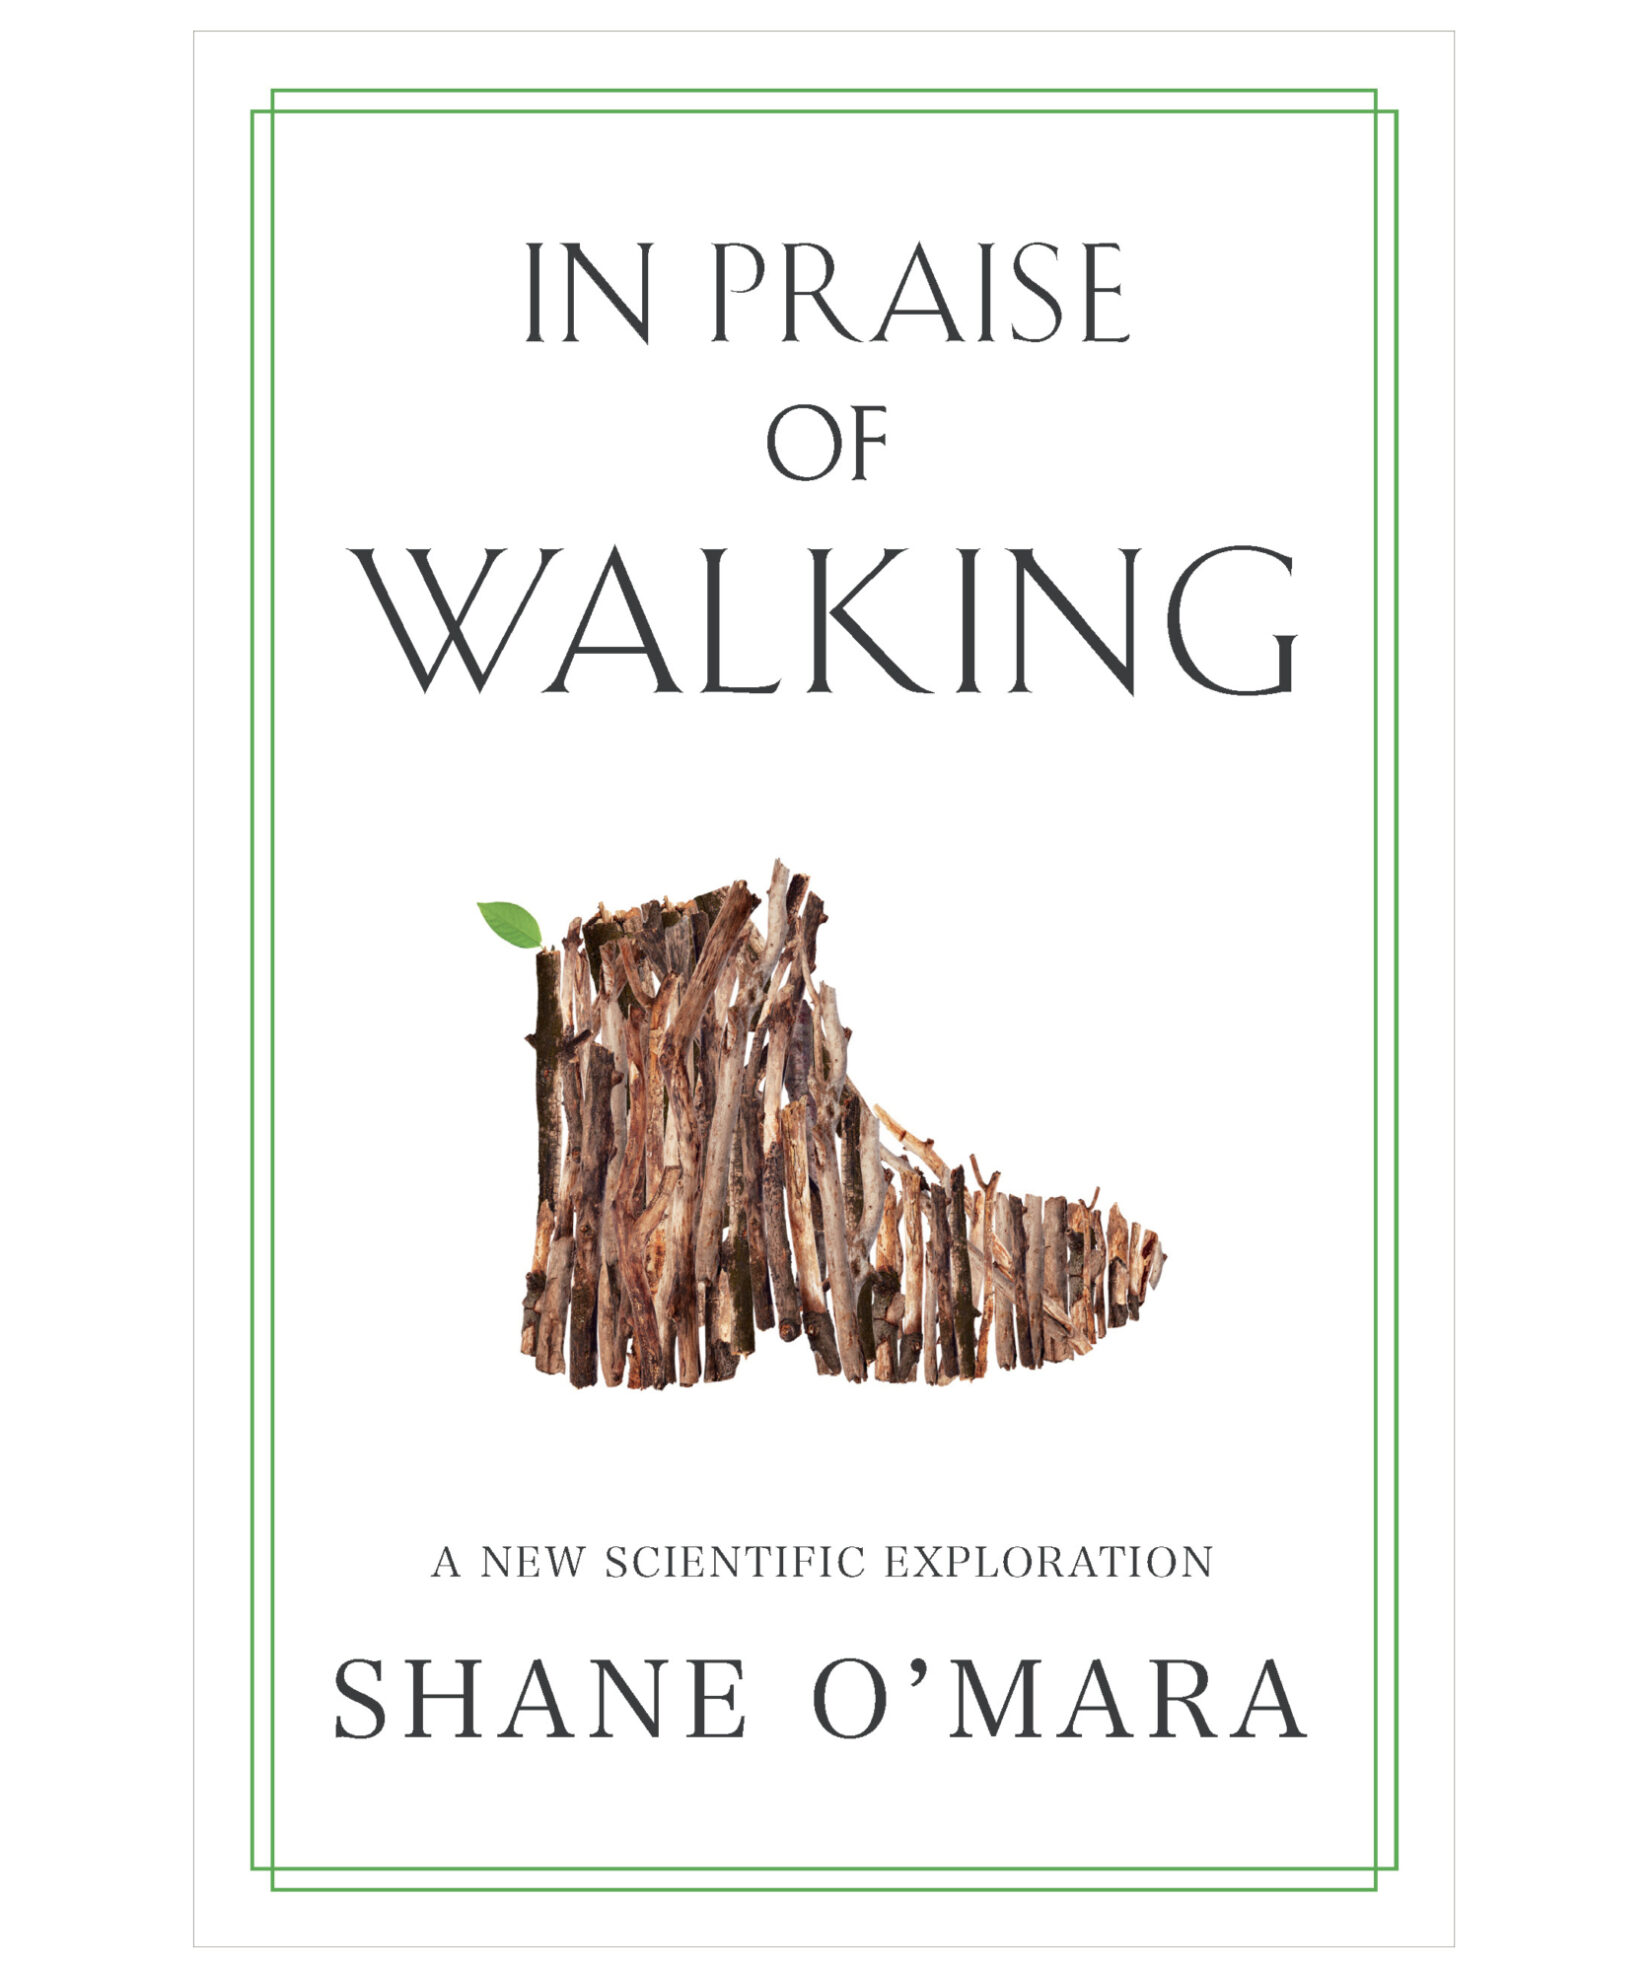 """The book jacket for """"In Praise of Walking,"""" showing an illustration of a hiking boot."""